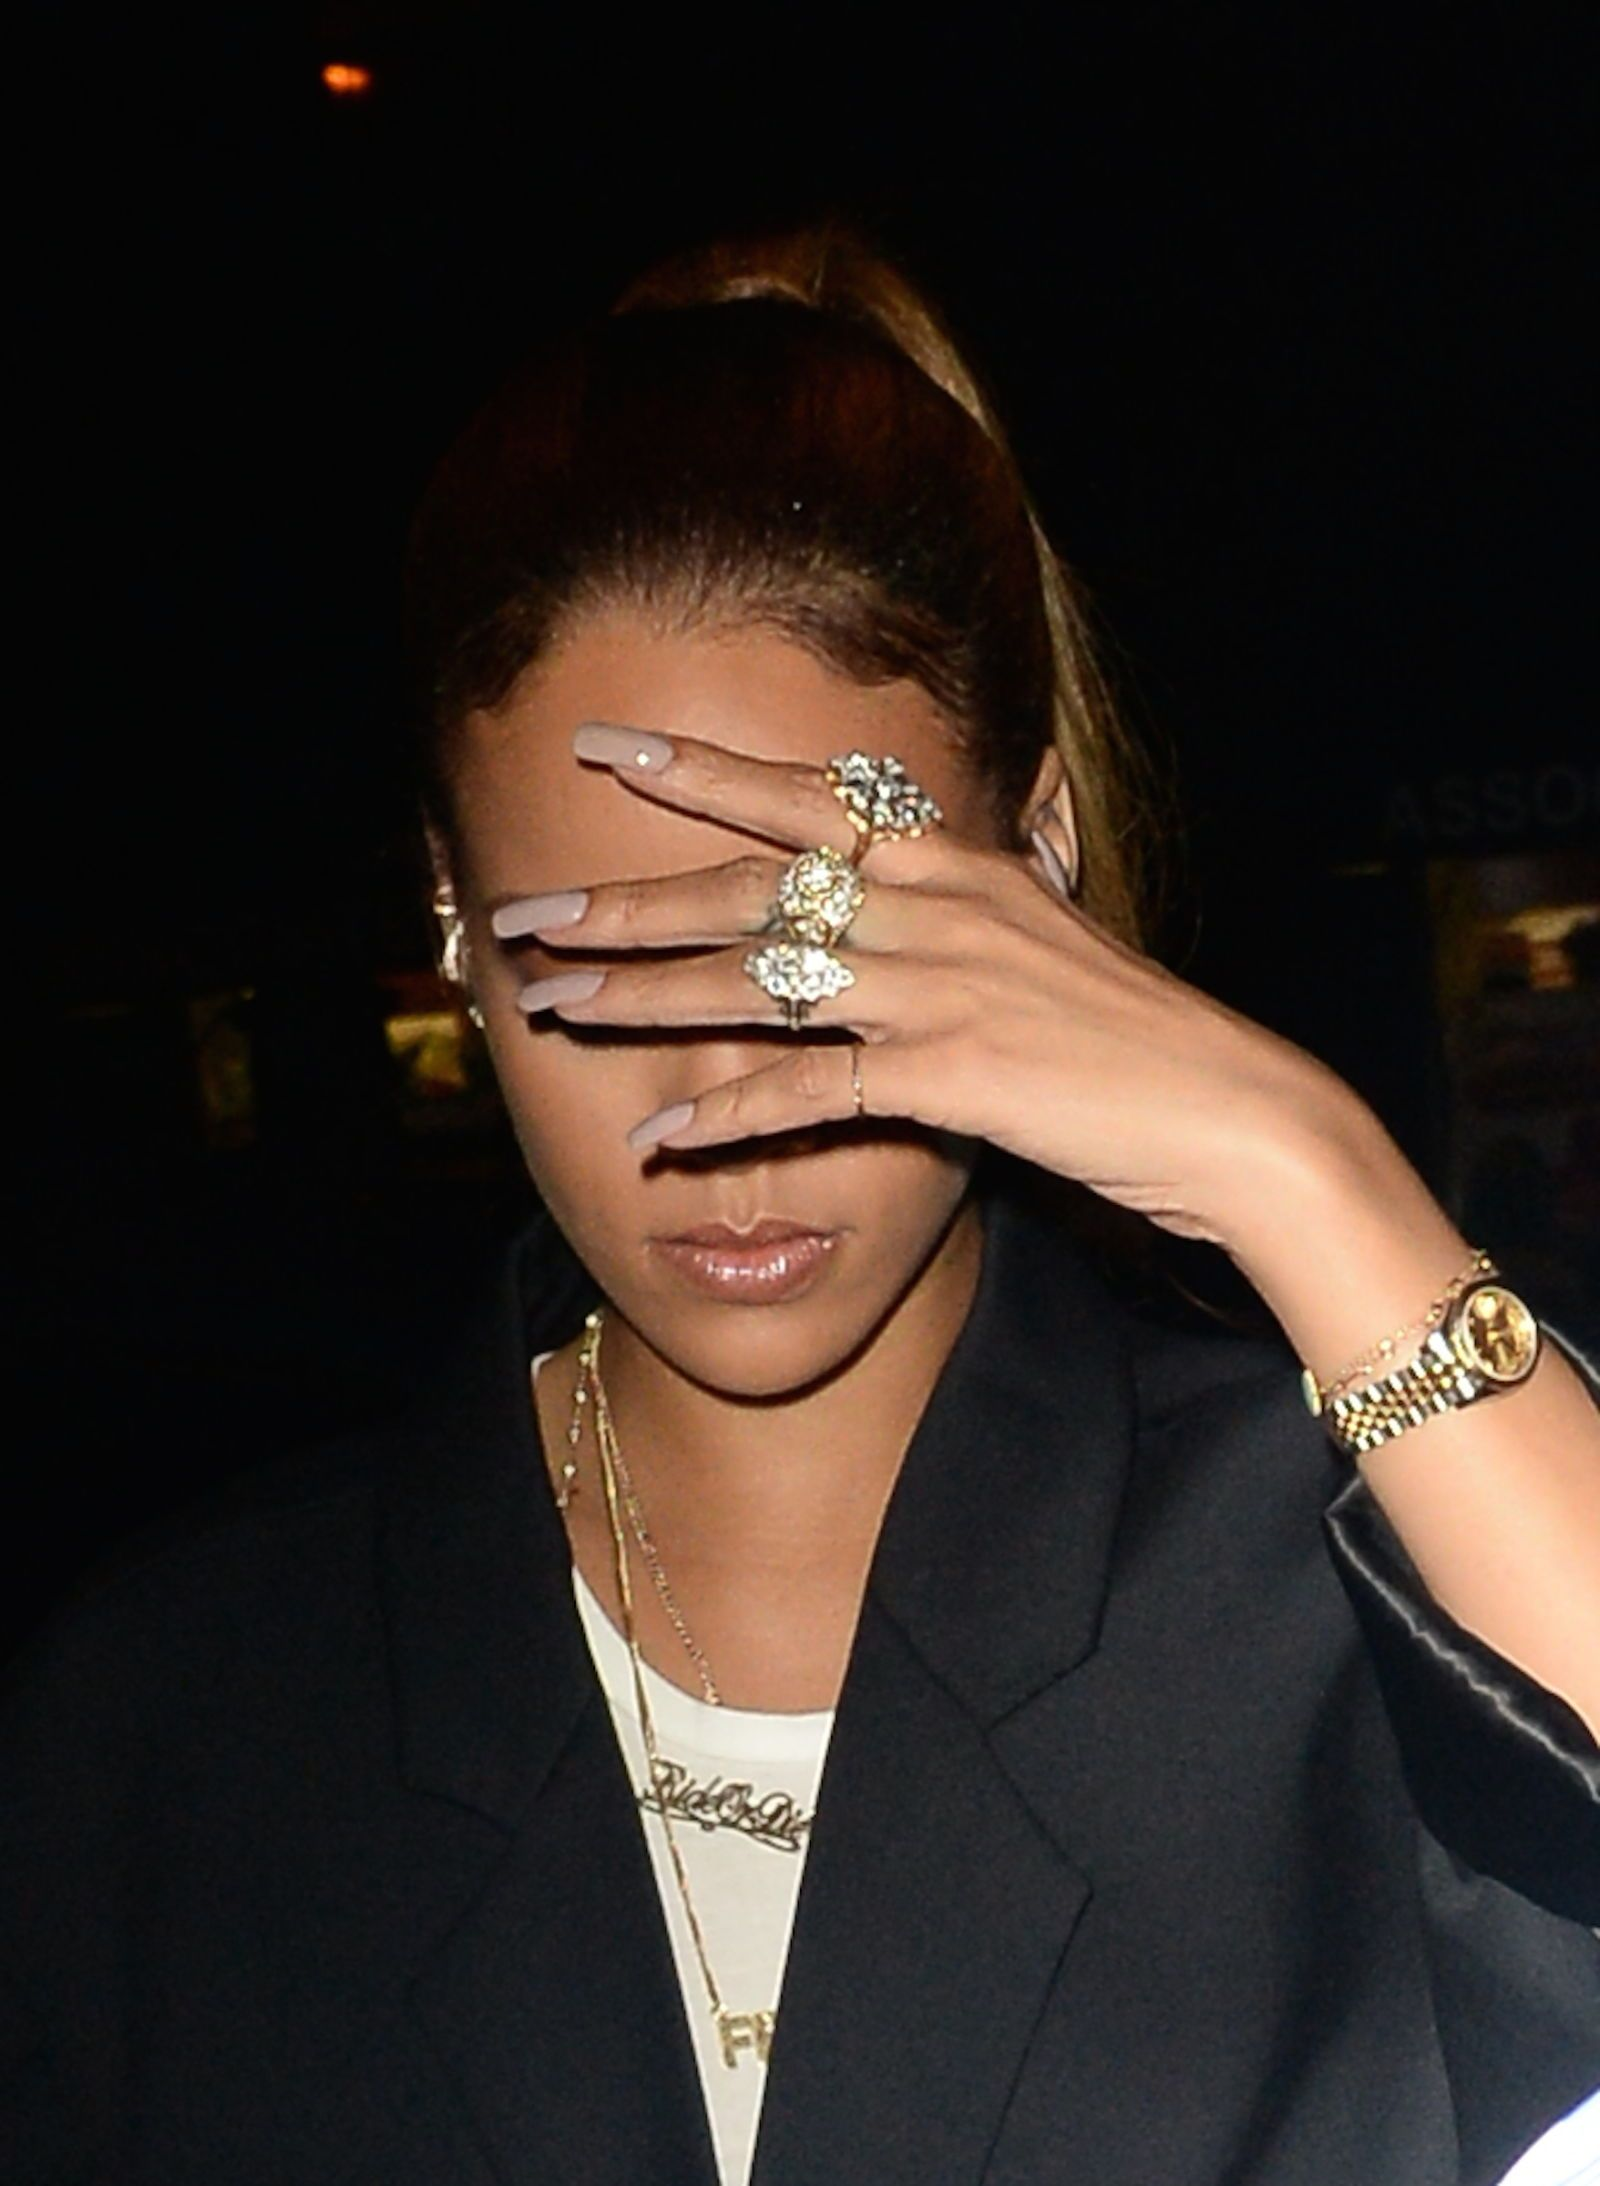 11 Ways Rihanna Displays Her Acrylic Nails